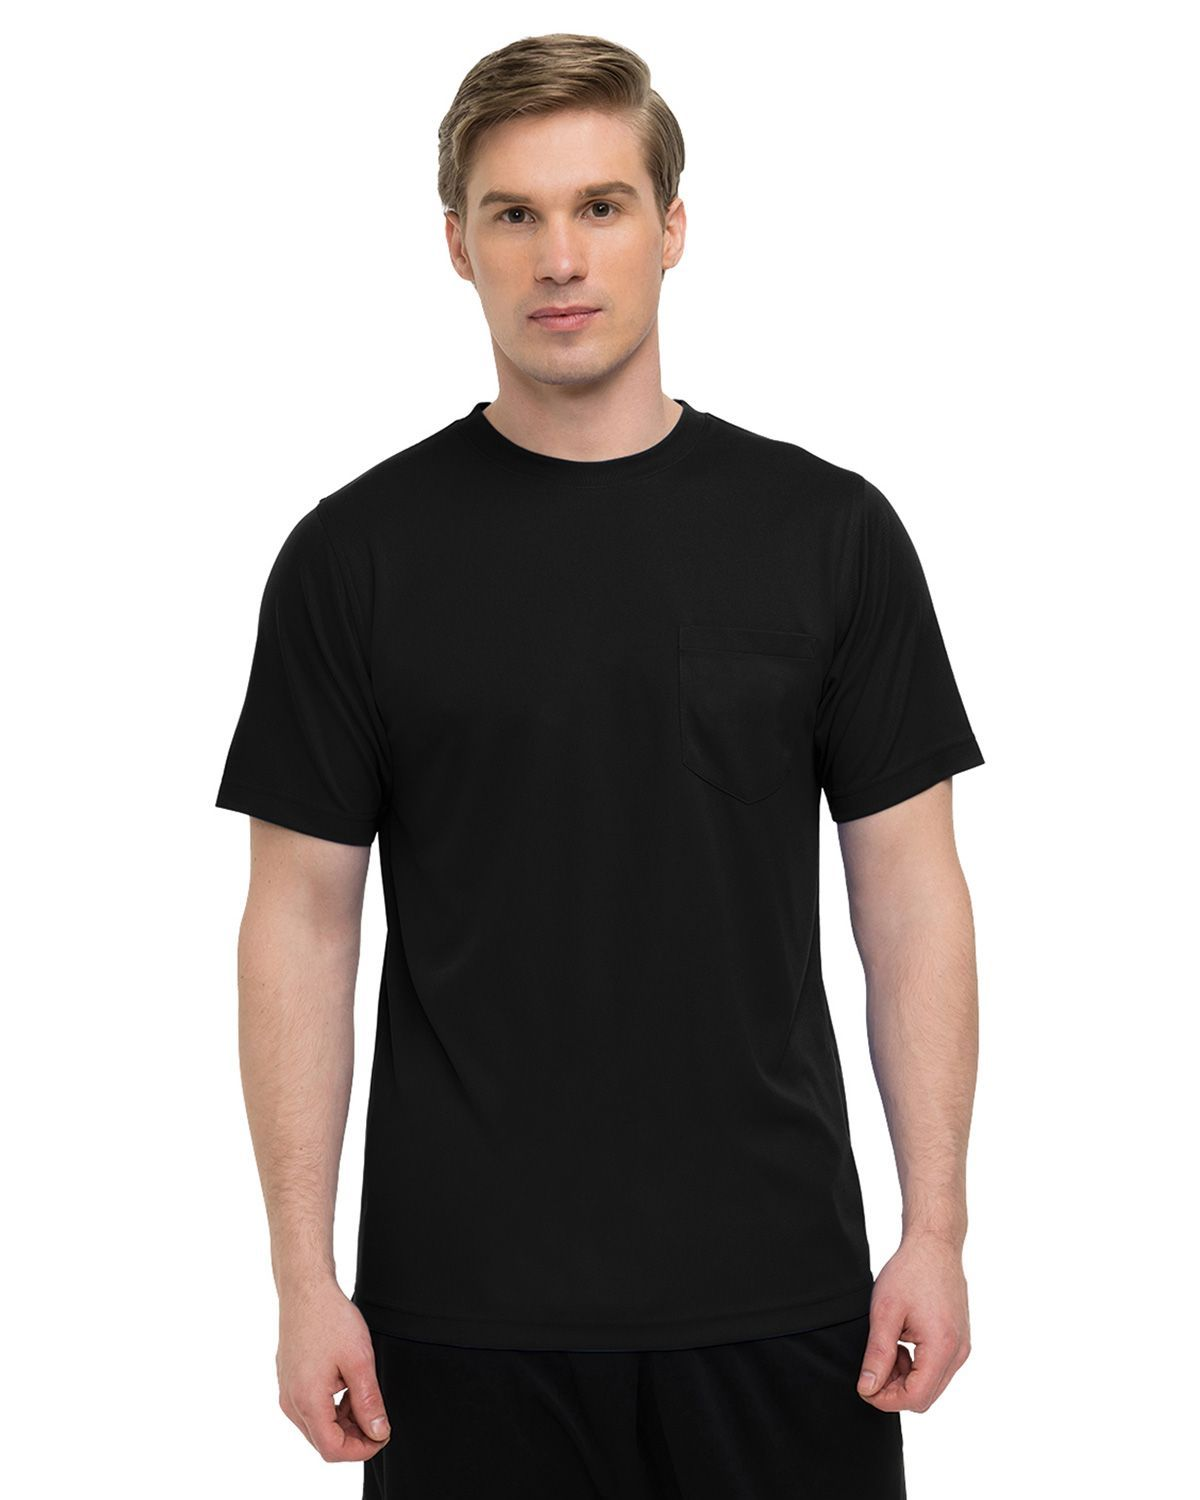 Tri-Mountain Performance K020PCN Short Sleeve Crewneck shirt - Black - XLT K020PCN